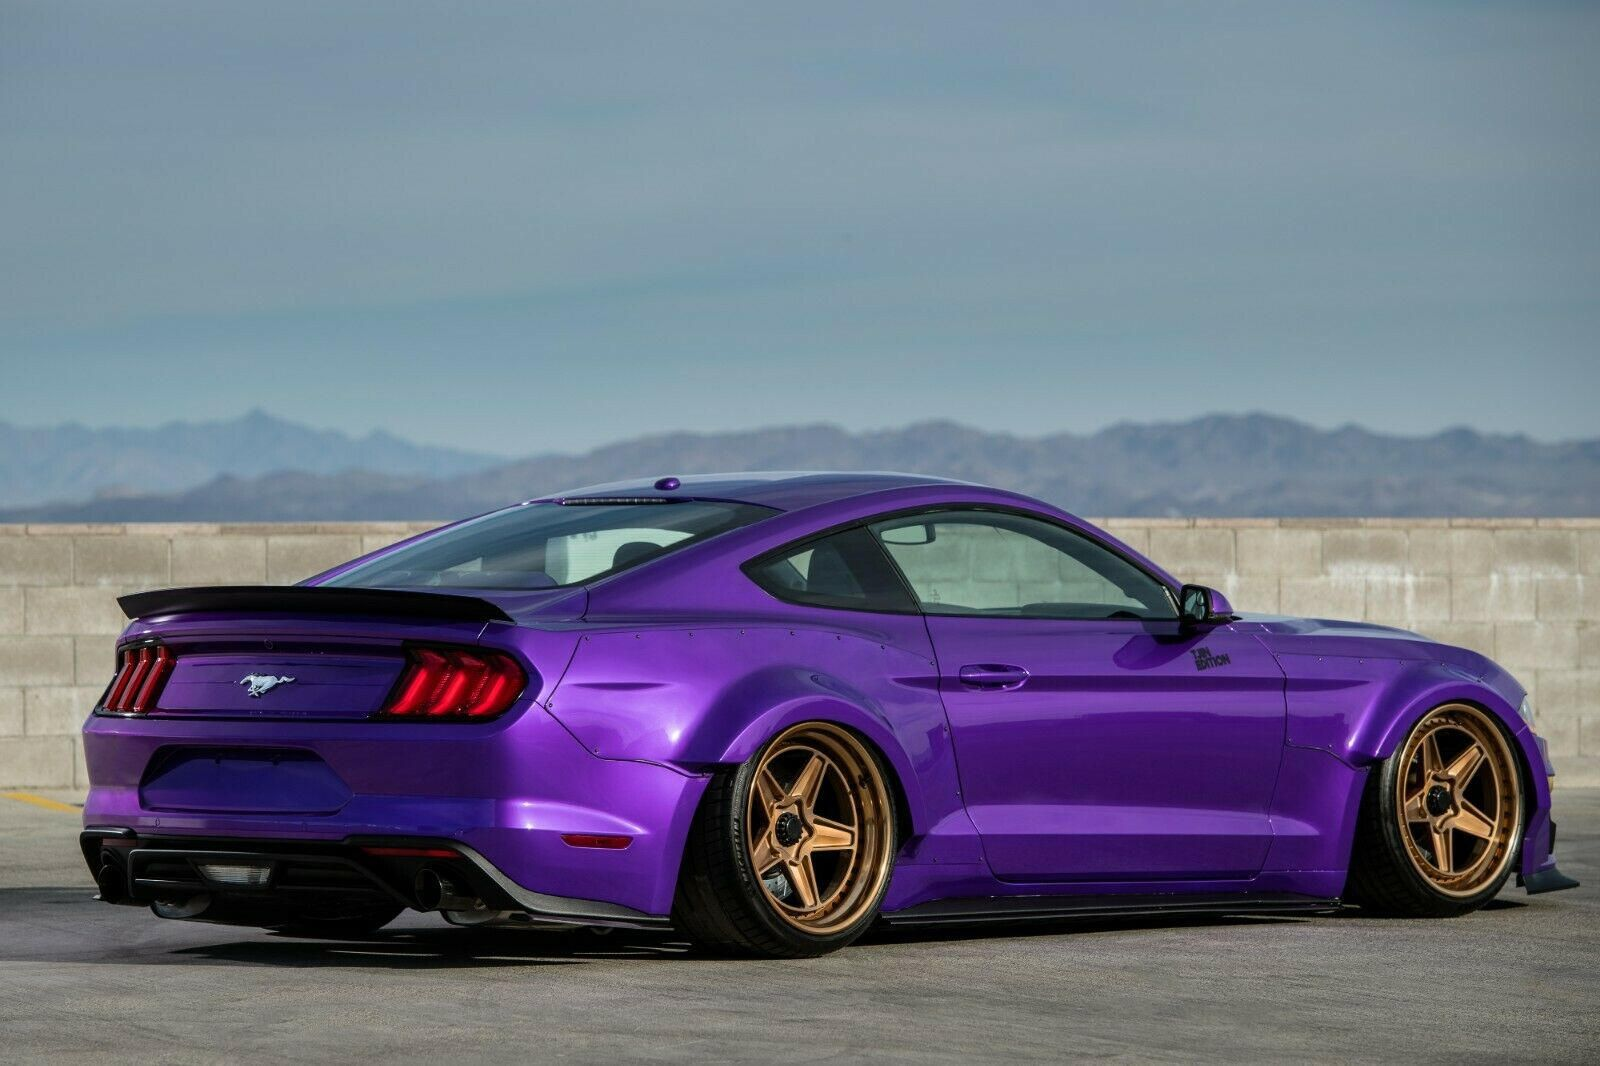 This Lamborghini Purple Ford Mustang Is Is Low Wide And Up For Grabs It Just Looks So Royal Ford Mustang Ecoboost Mustang Ecoboost Mustang